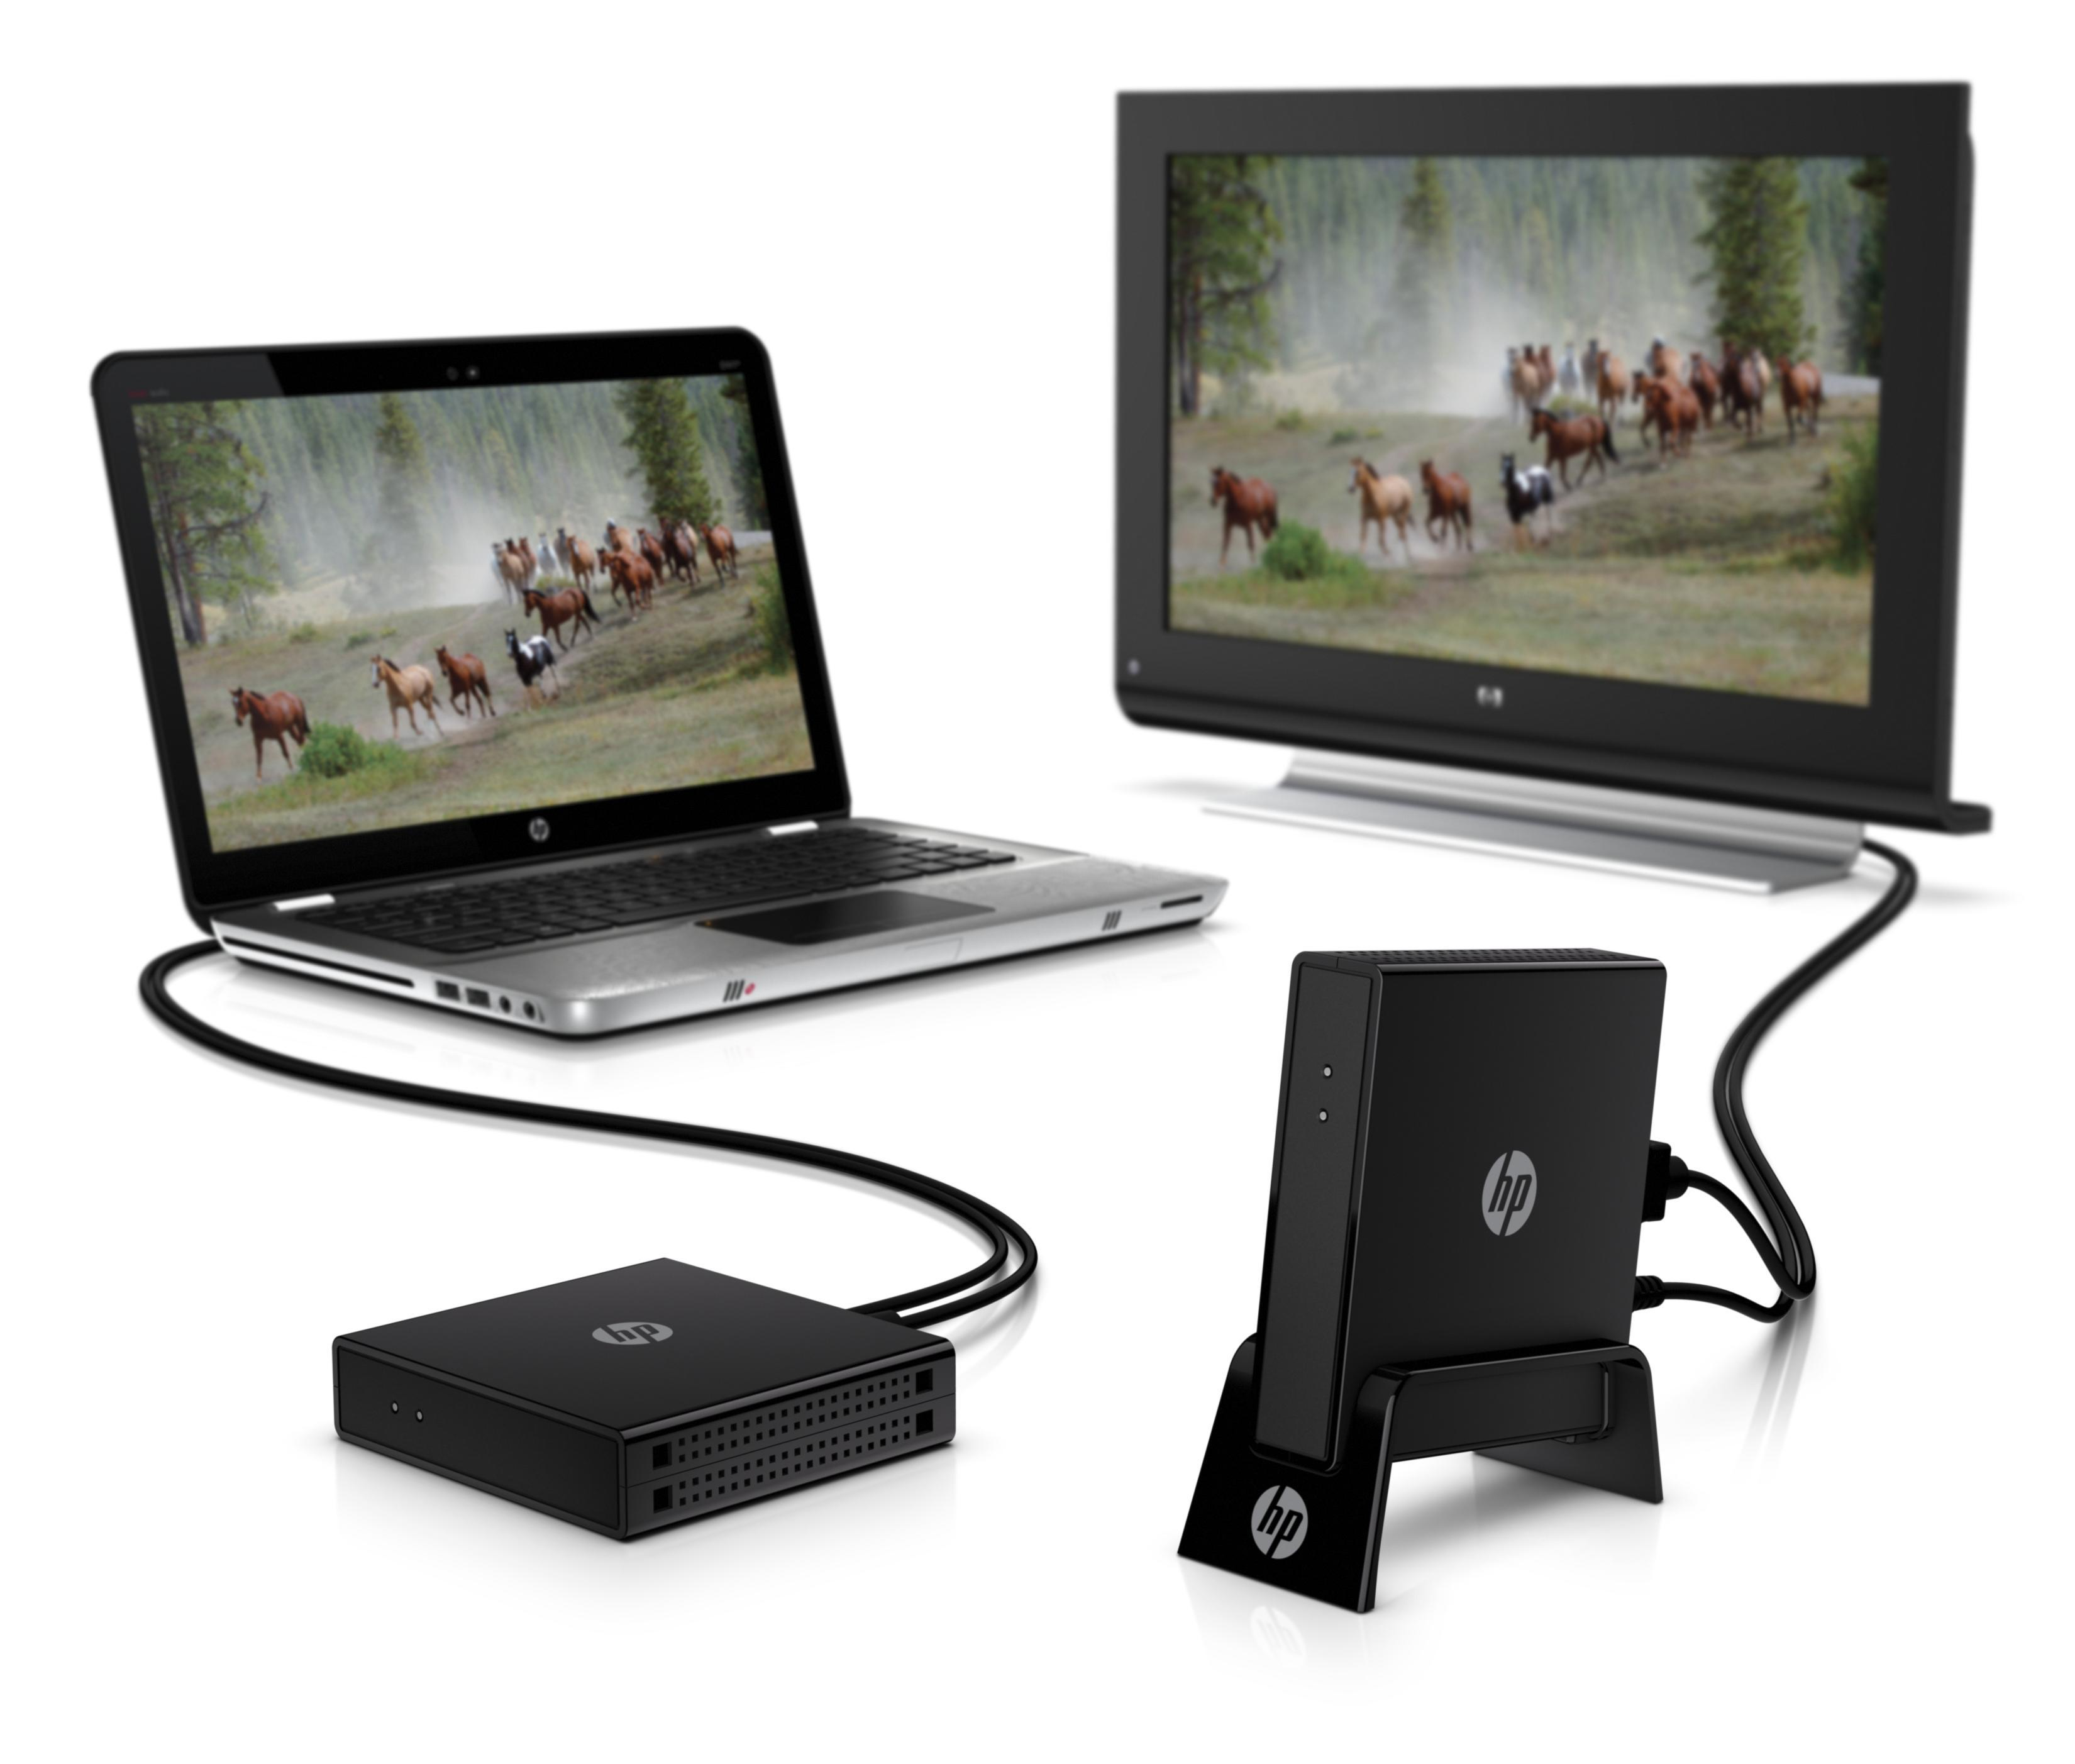 HP Wireless TV Connect: useful but bulky.